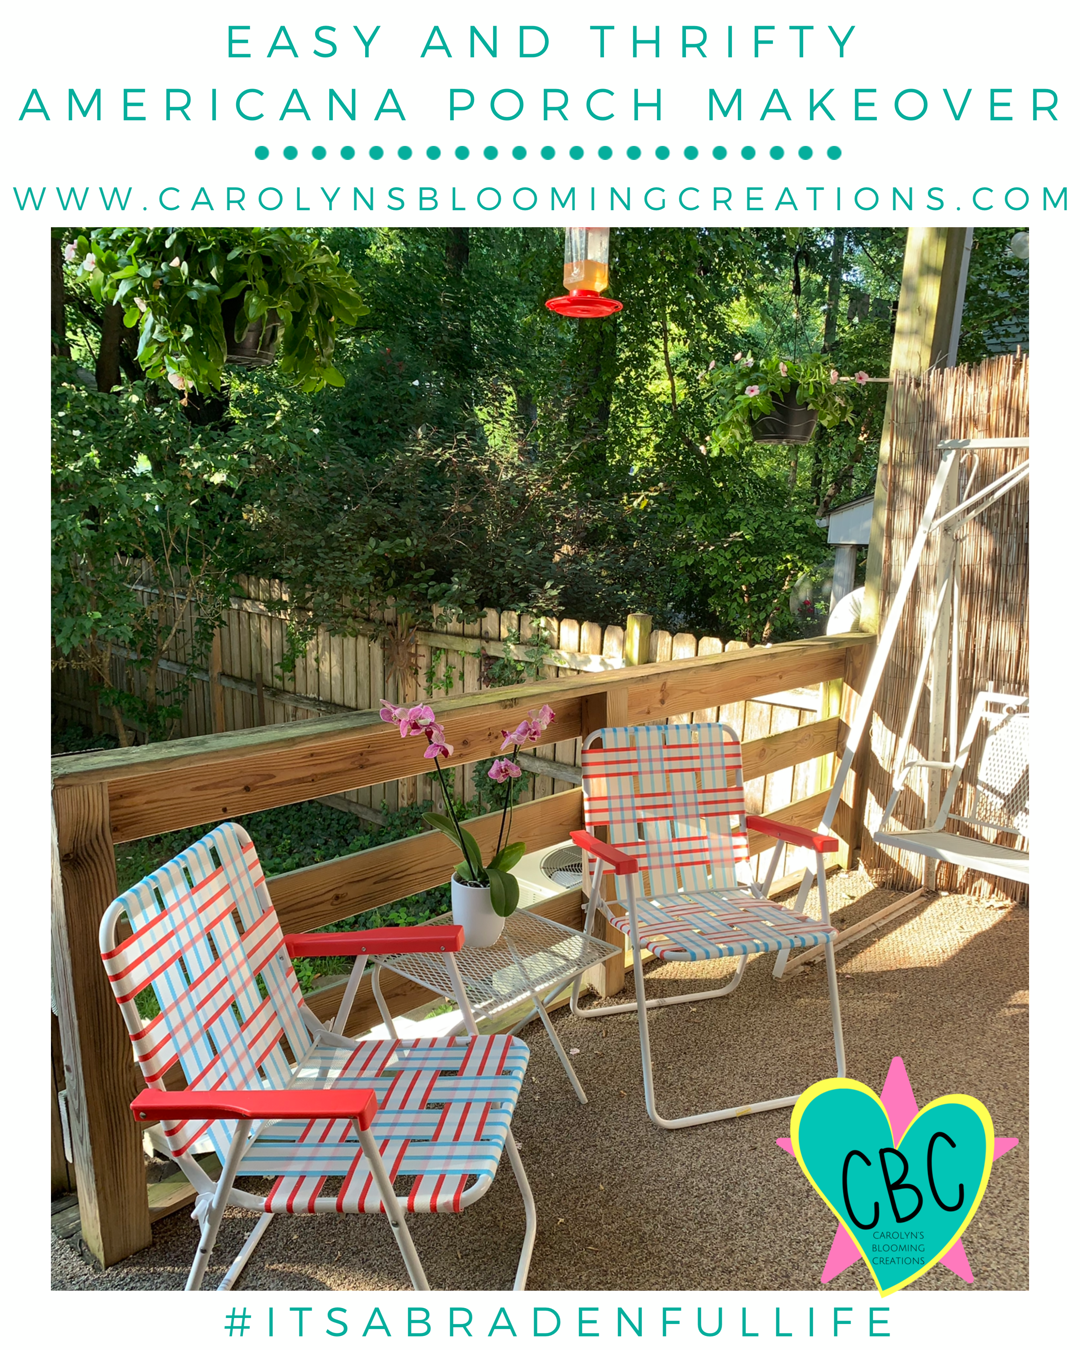 Pin me! www.carolynsbloomingcreations.com  Renovations designed and executed by Carolyn's husband, Thomas E. Braden Jr.